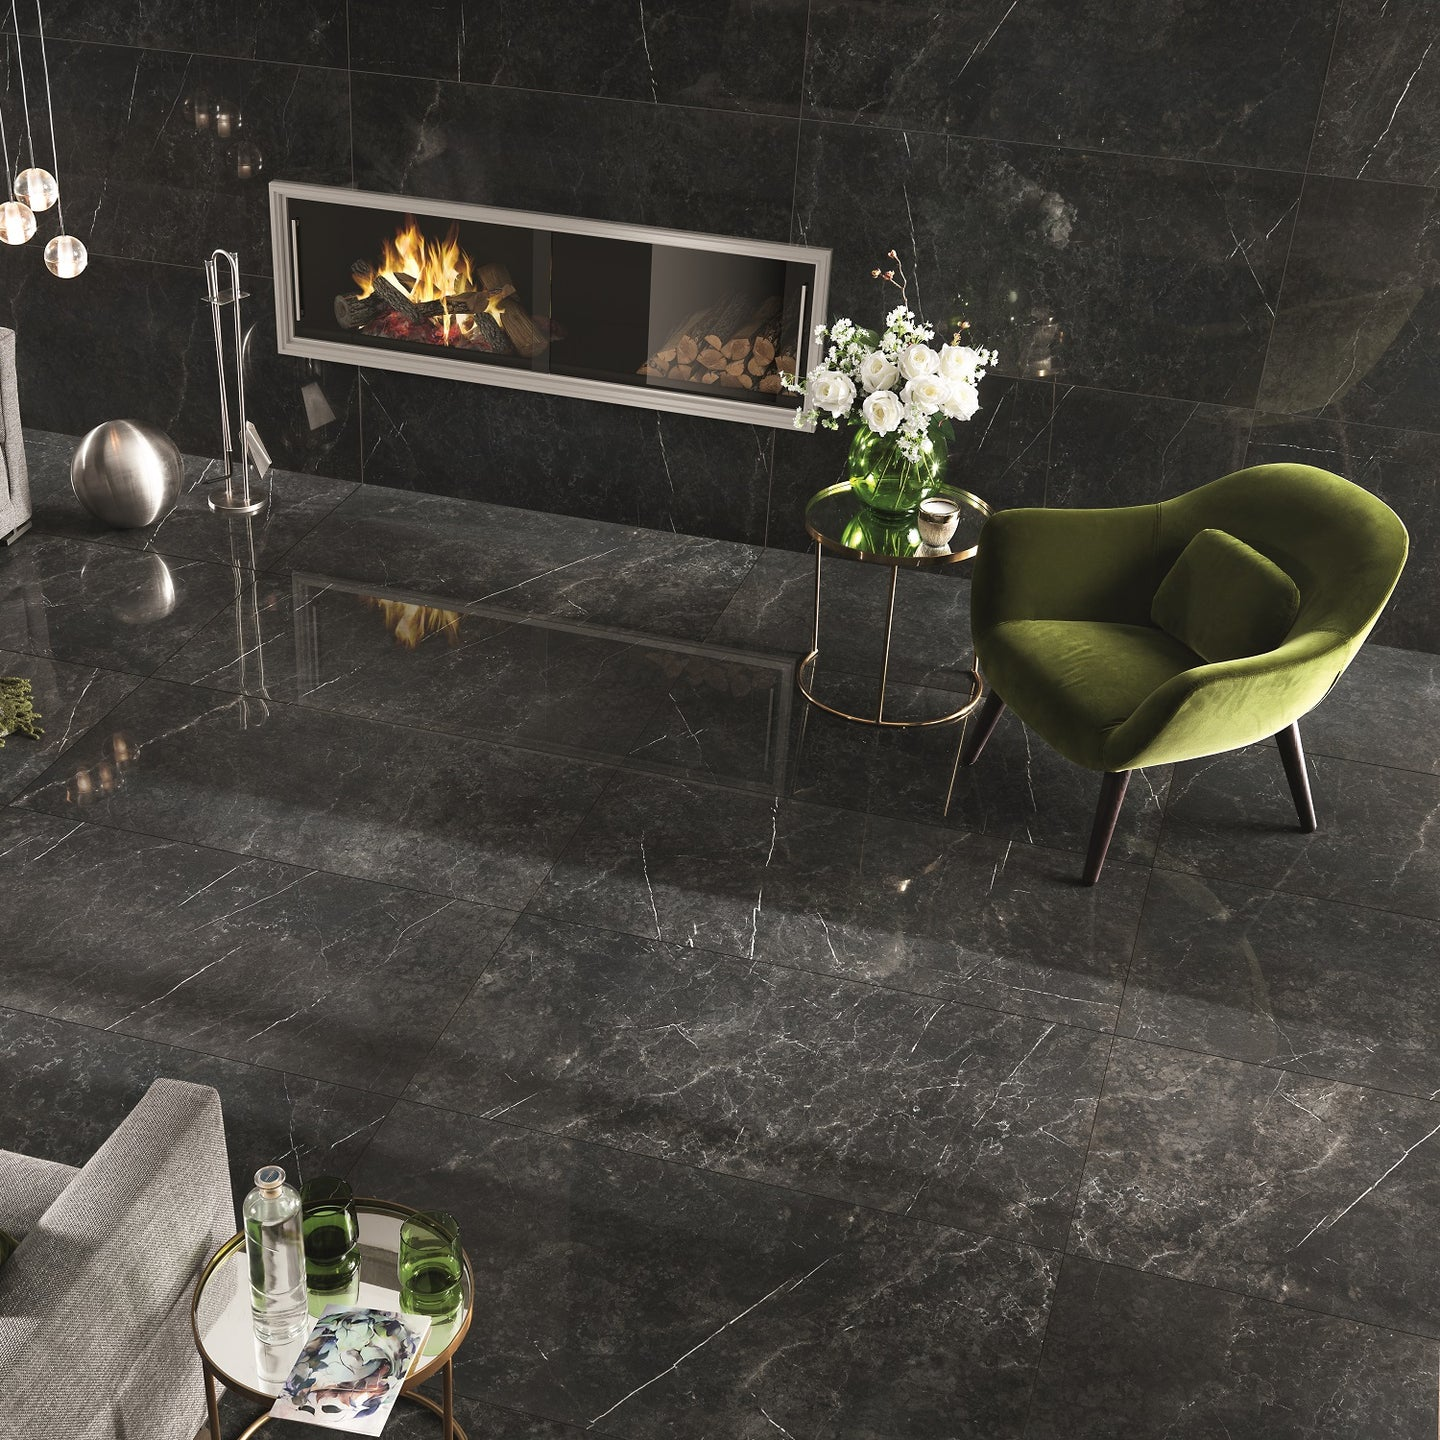 Imp Nero Imperiale Polished Porcelain From £39.00 Per Sqm